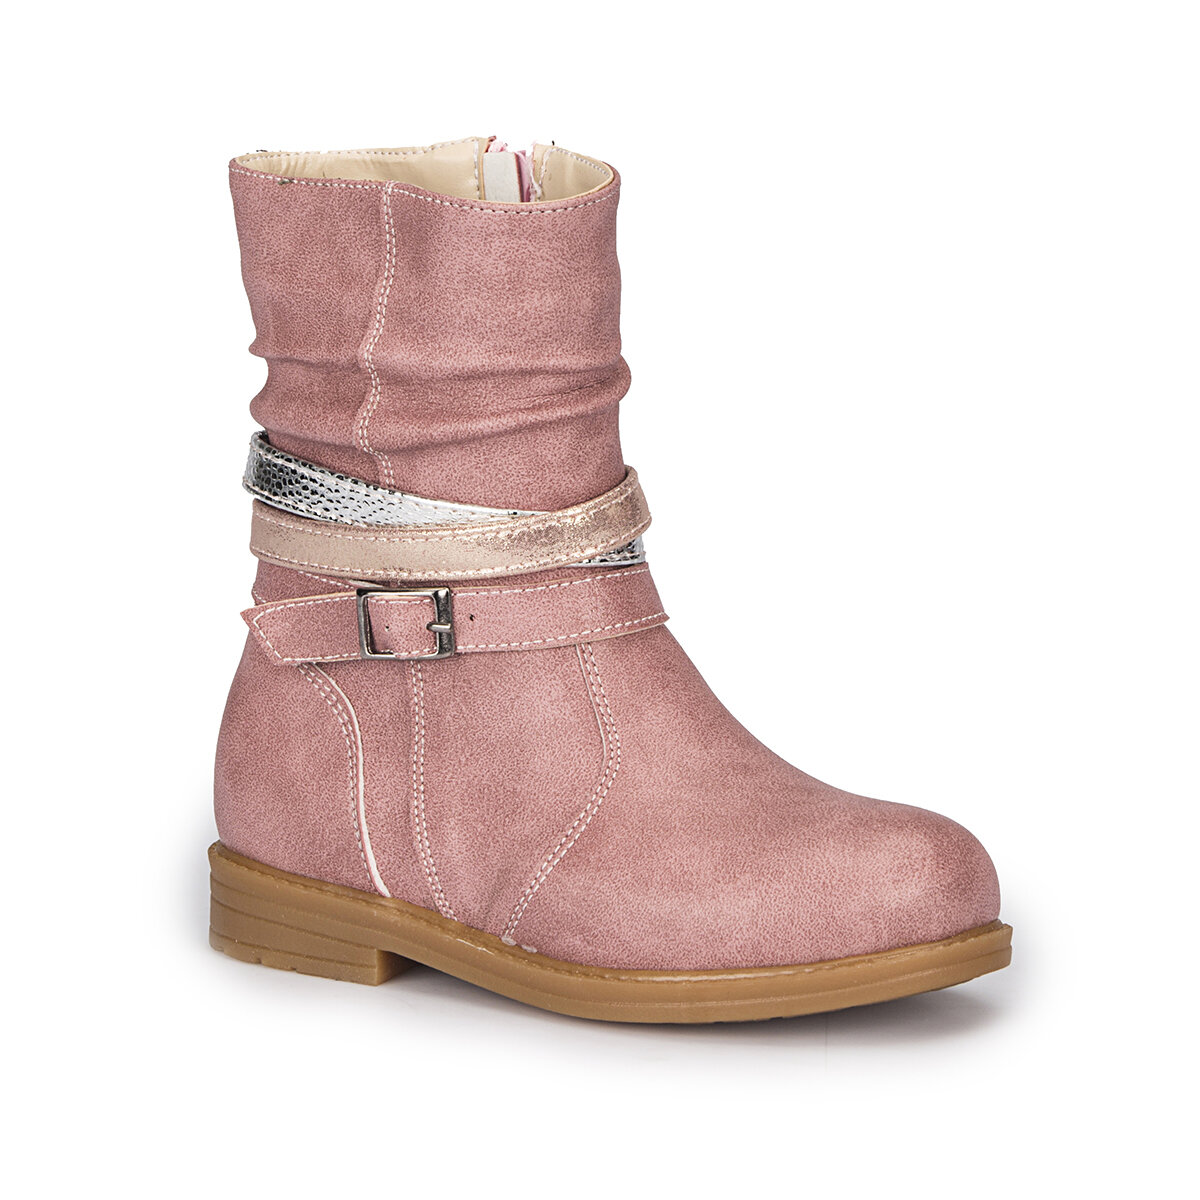 FLO SOULY-1 Pink Female Child Boots PINKSTEP